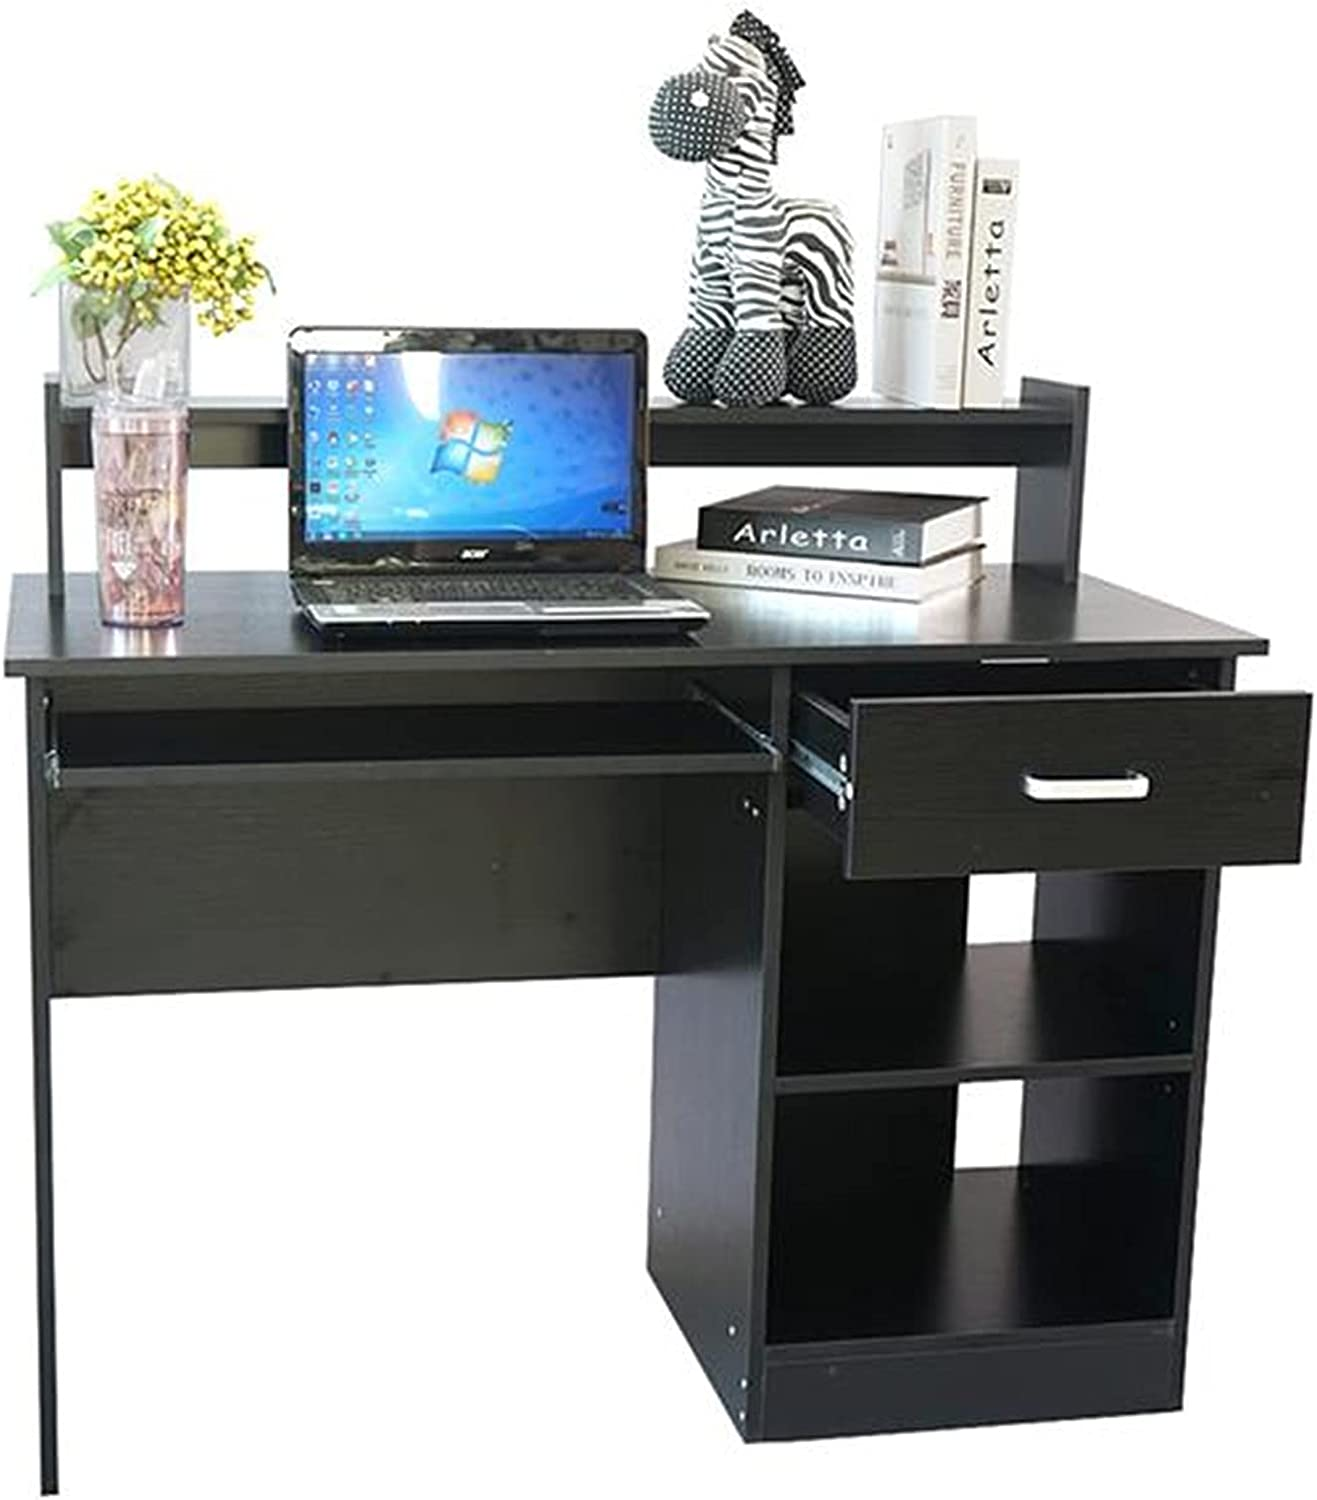 TIYKI Simple Style Ergonomic Table Storage Popular brand in the world with Computer Direct sale of manufacturer Desk Bo